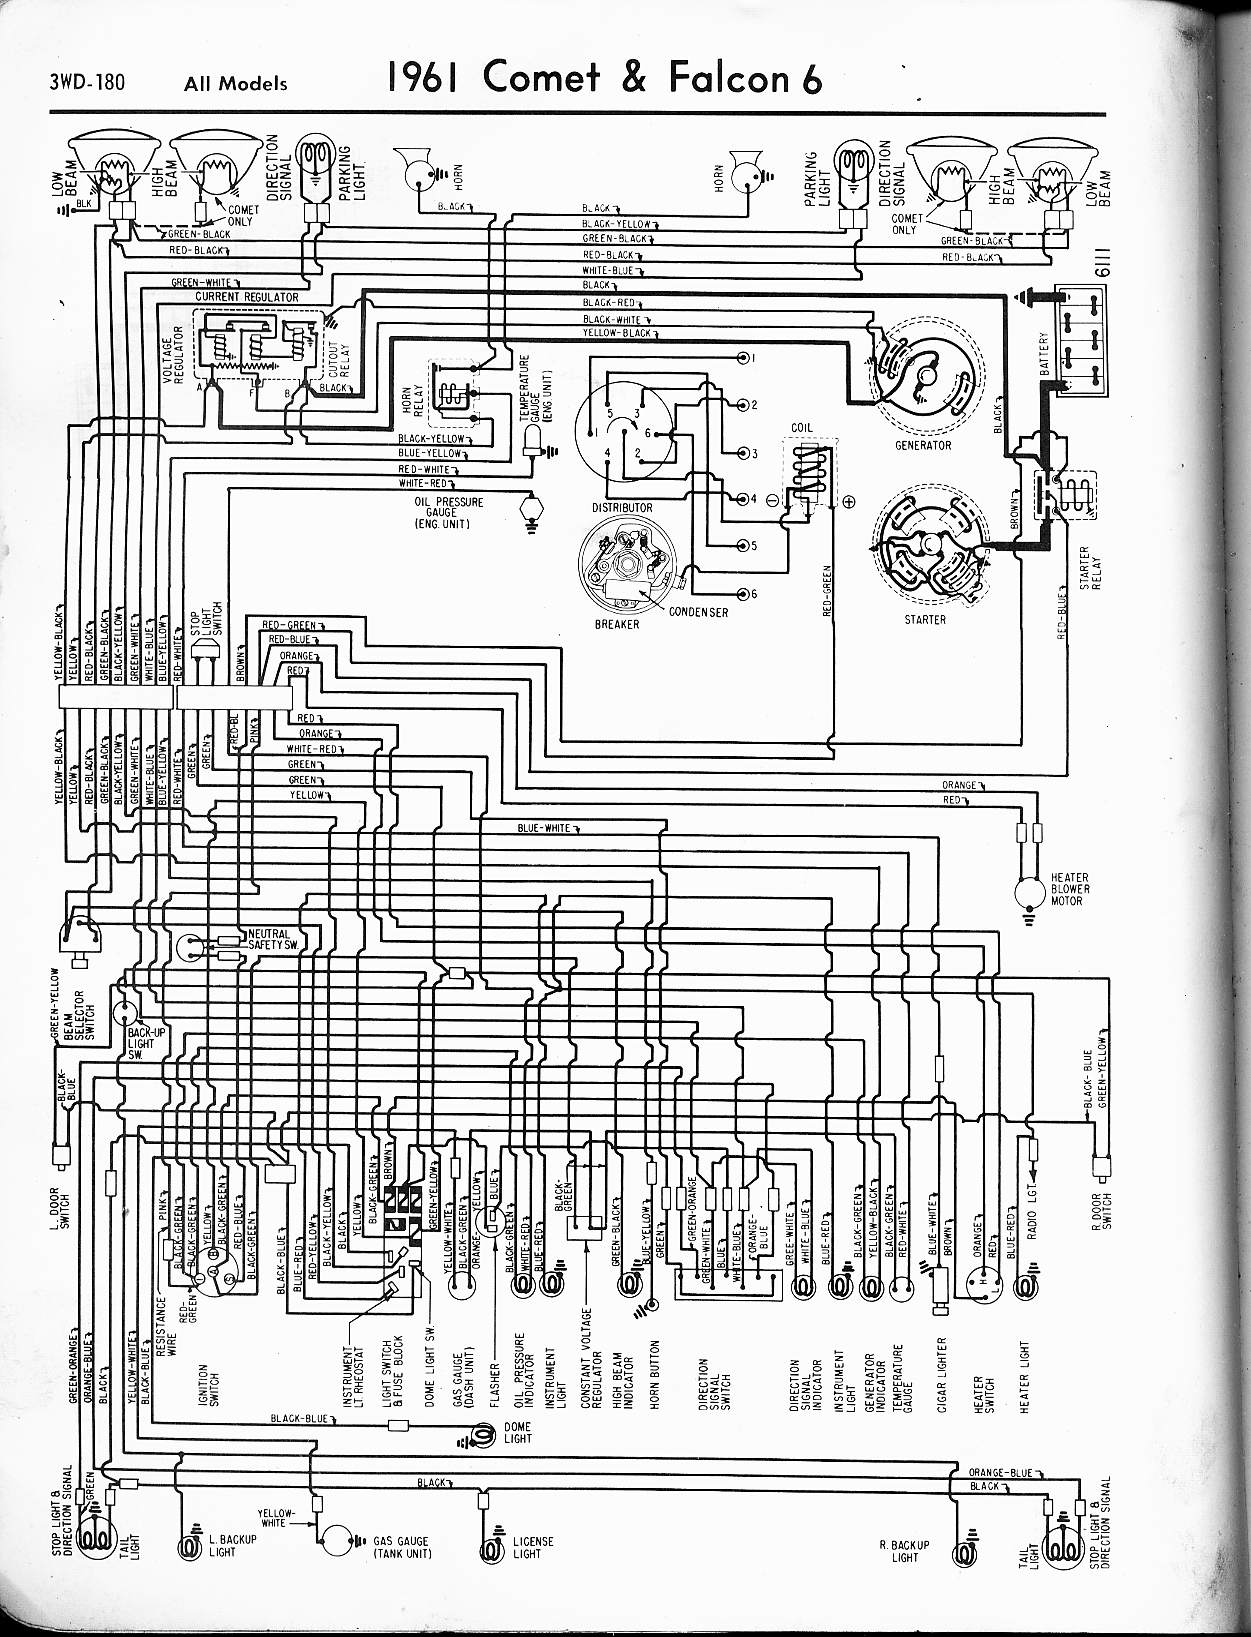 MWire5765 180 ba falcon wiring diagram jon boat wiring diagram \u2022 free wiring ba falcon wiring diagram free download at gsmportal.co